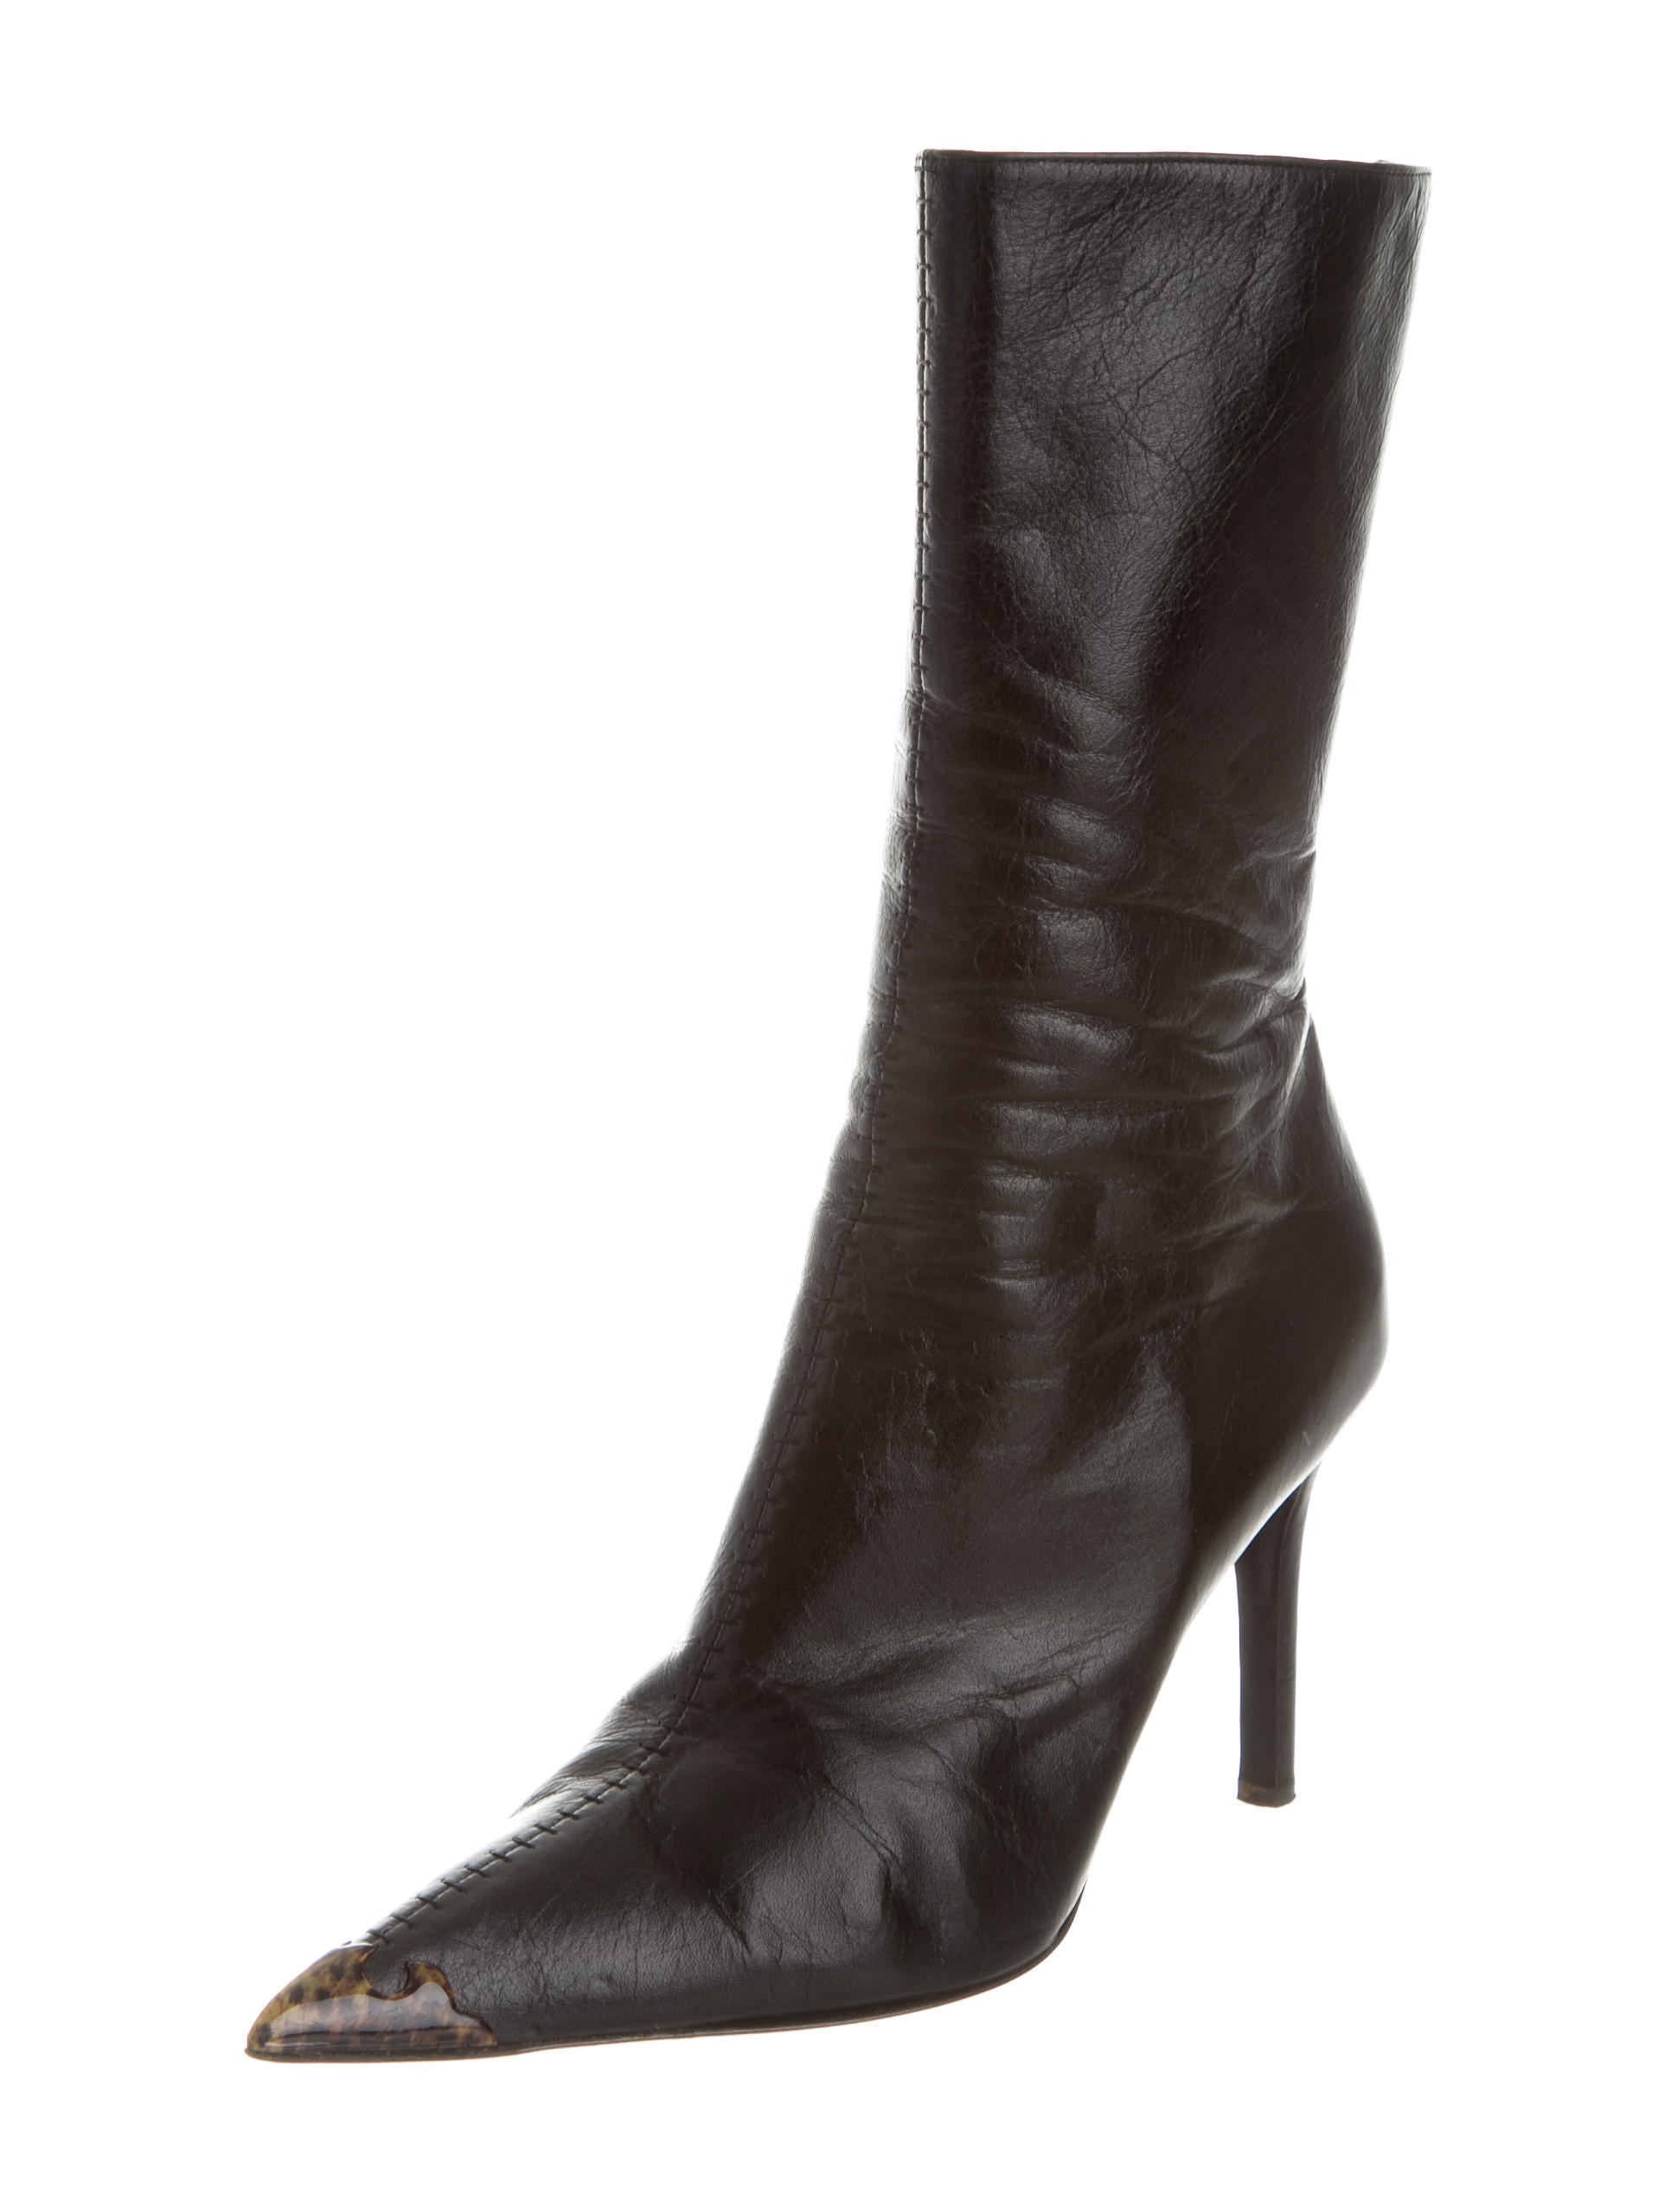 roberto cavalli leather pointed toe boots shoes